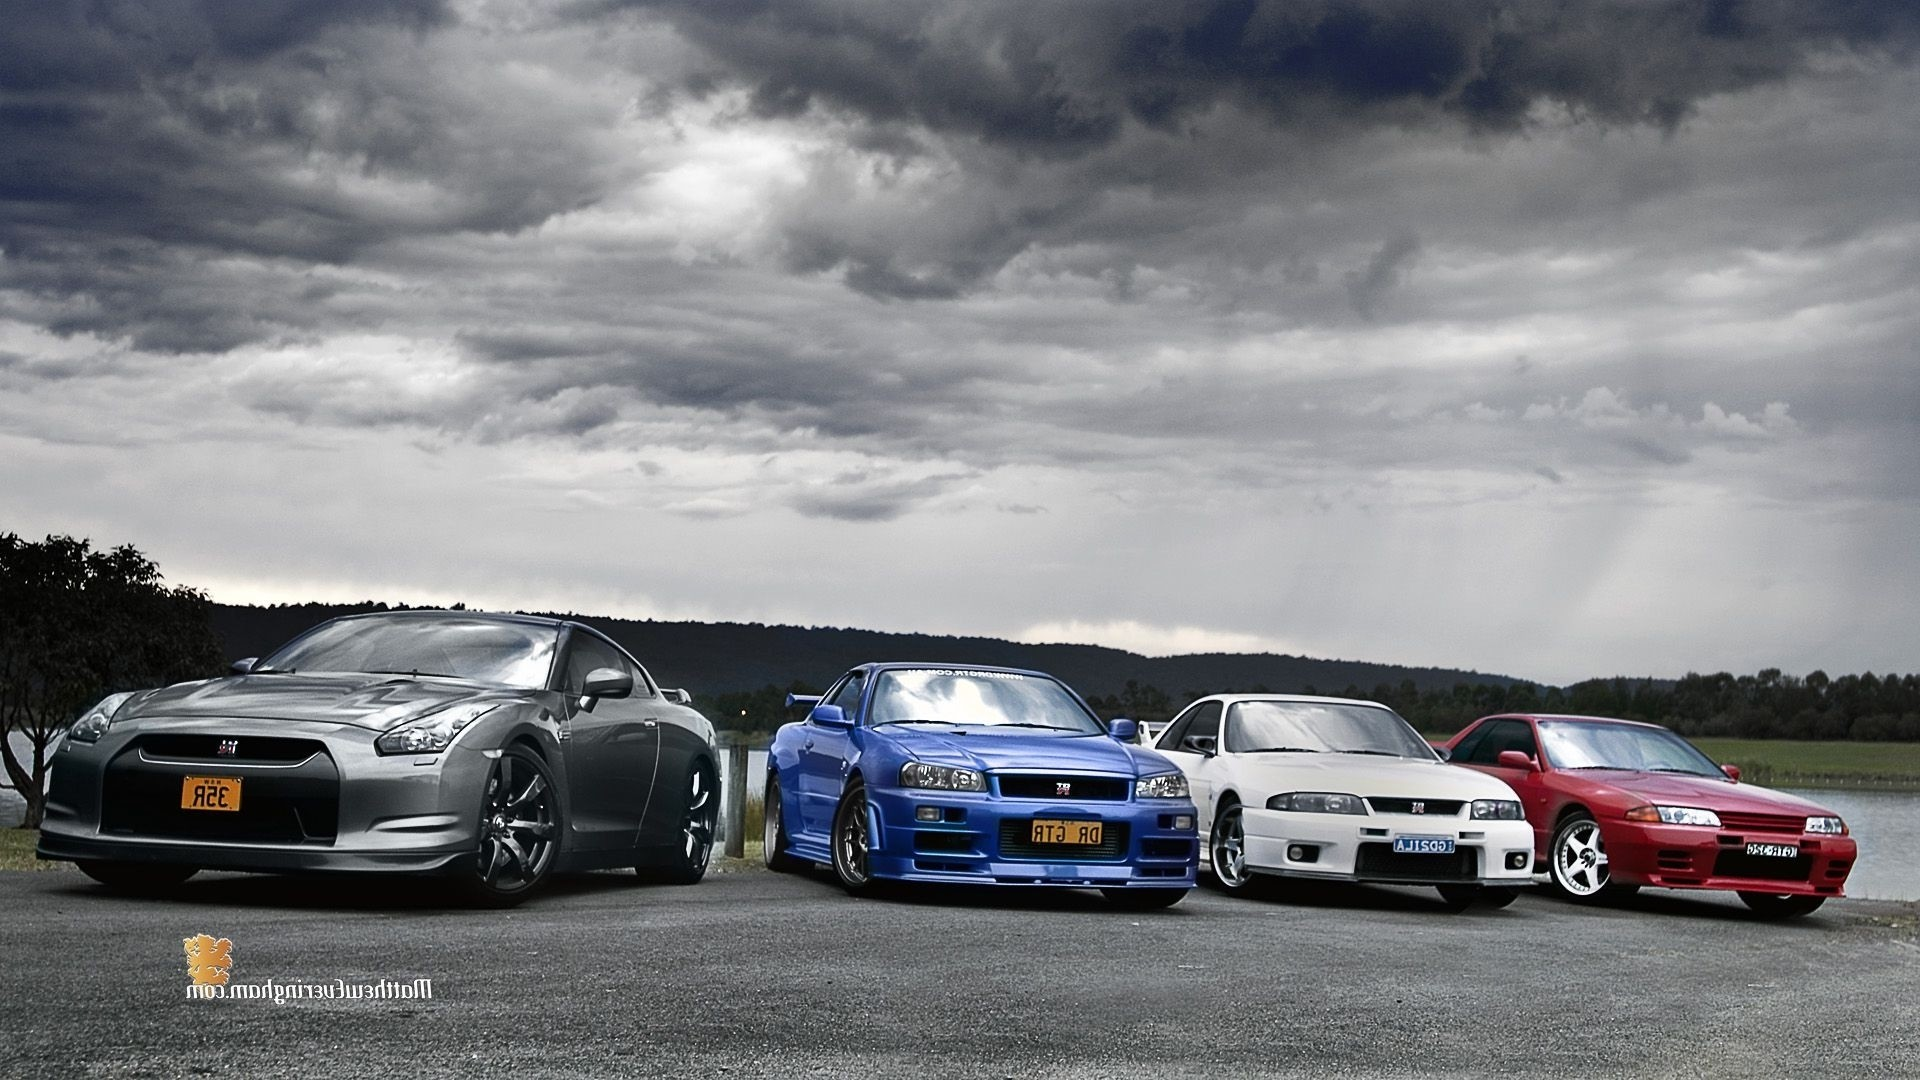 Res: 1920x1080, Nissan Skyline GT-R Wallpapers 9 - 1920 X 1080